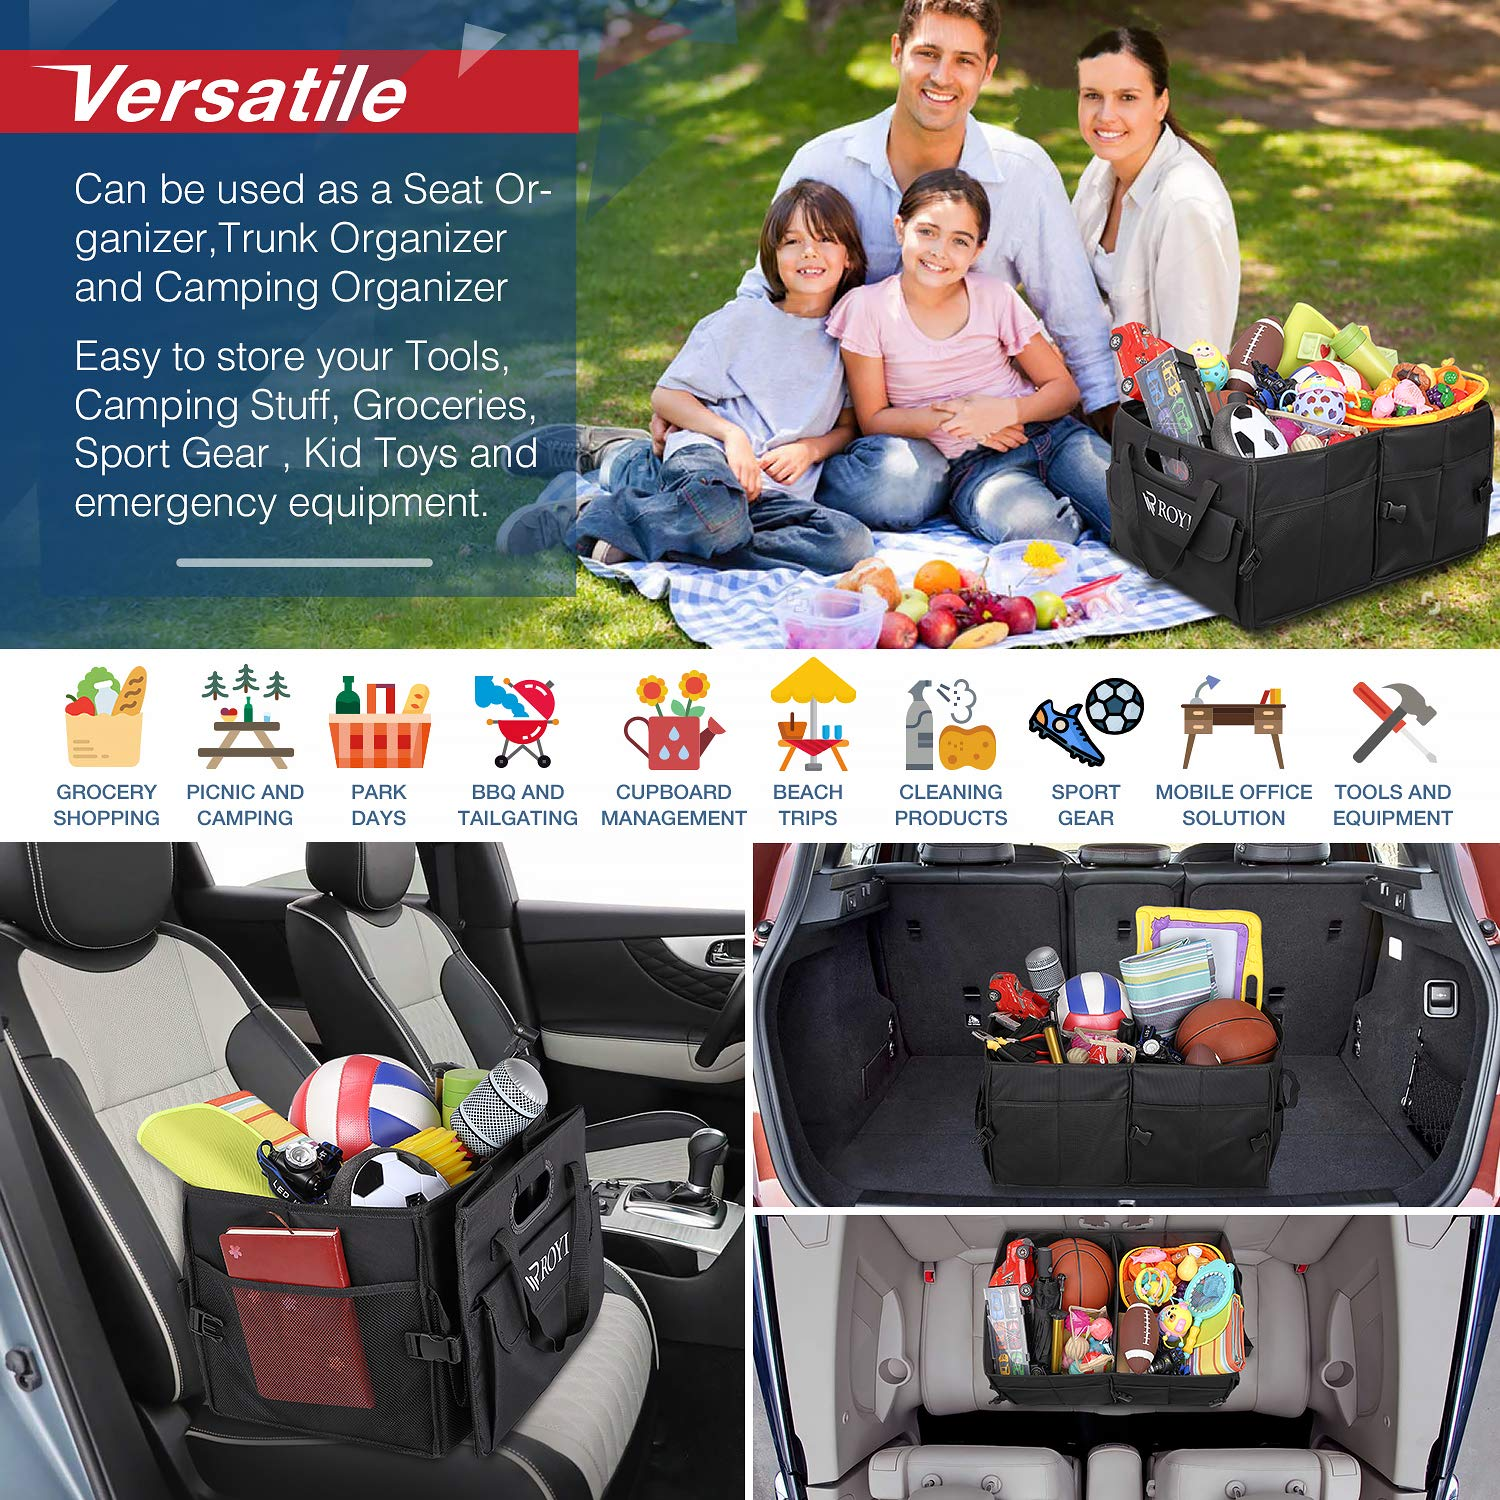 Upgraded Trunk Organizer for Car Heavy Duty Collapsible Portable Truck Bed Organizer with 4 Wider & Longer Non-Slip Bottom Strips to Prevent Sliding Bonus 1 Portable Toolkit by tomser (Image #7)